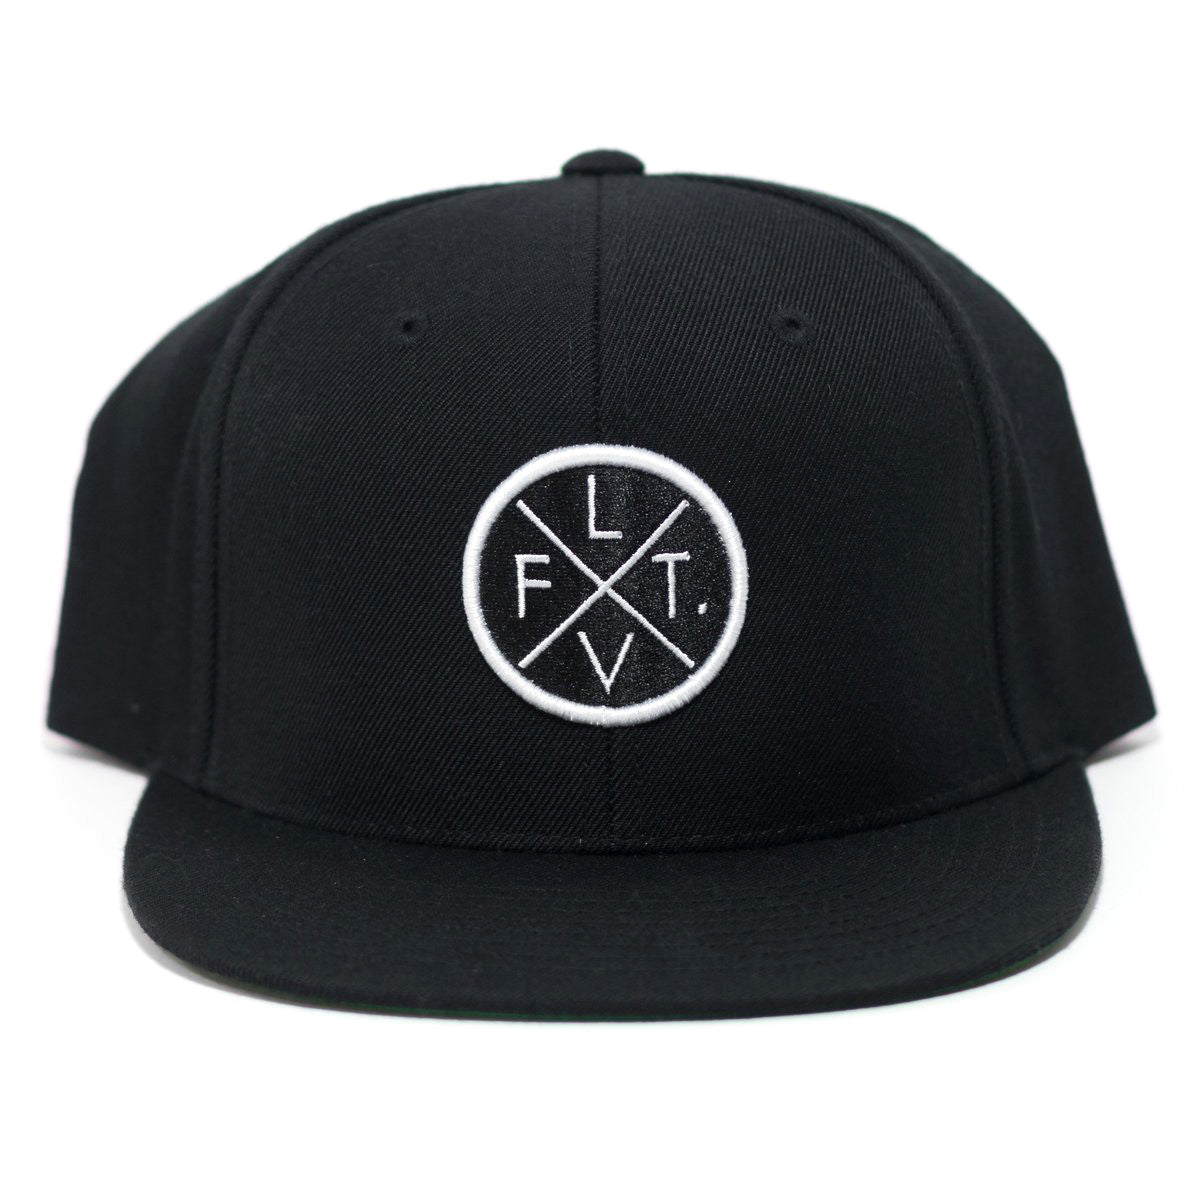 Prestige Worldwide Snapback - Black